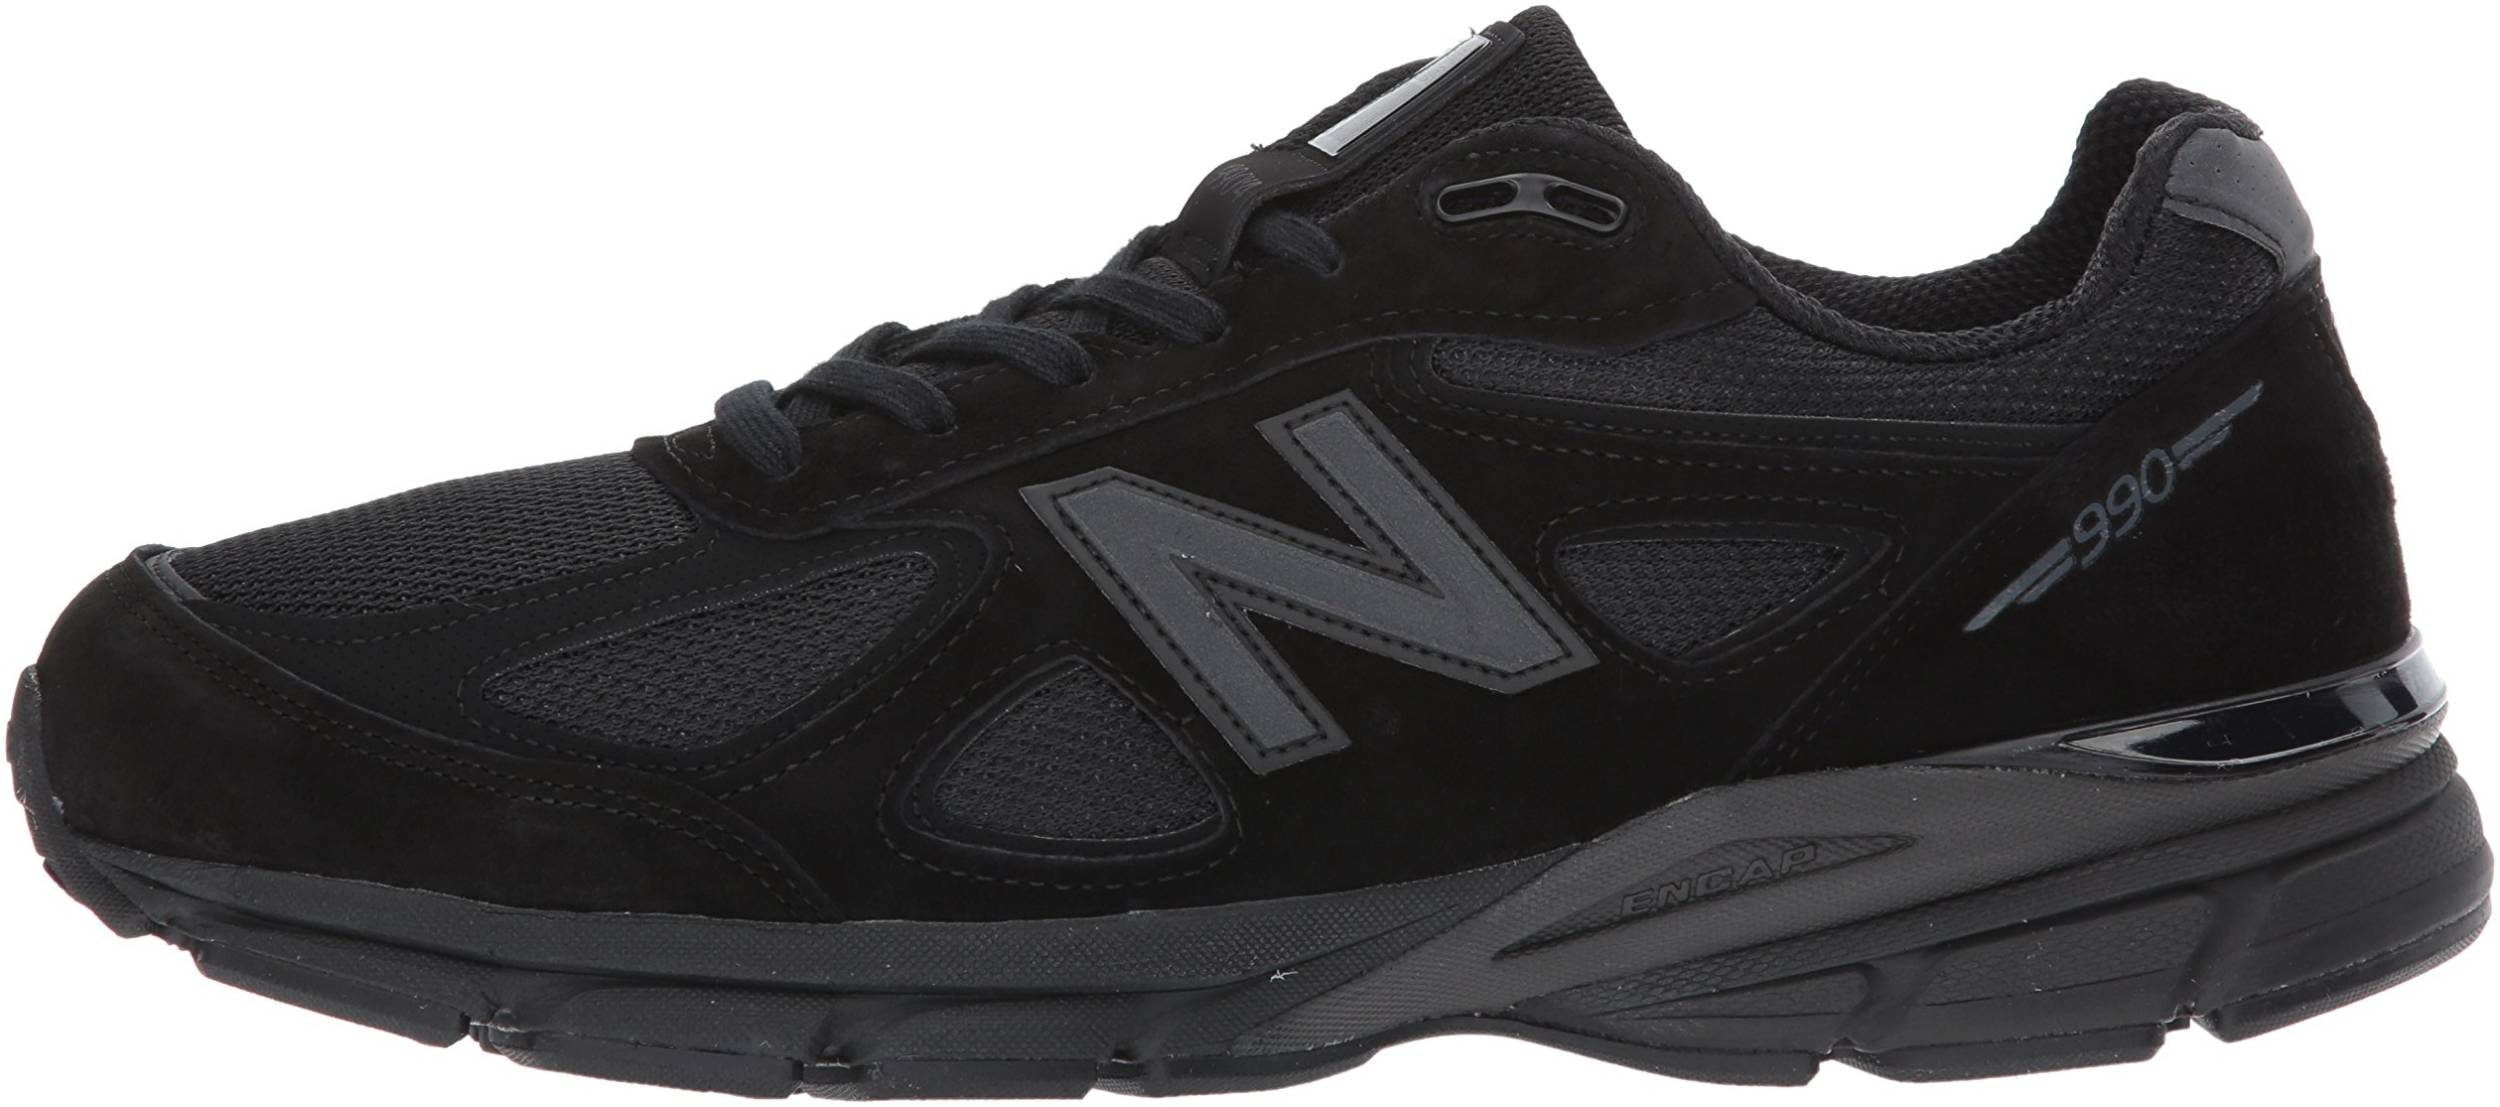 New Balance 990 v4 sneakers in 4 colors (only $54)   RunRepeat